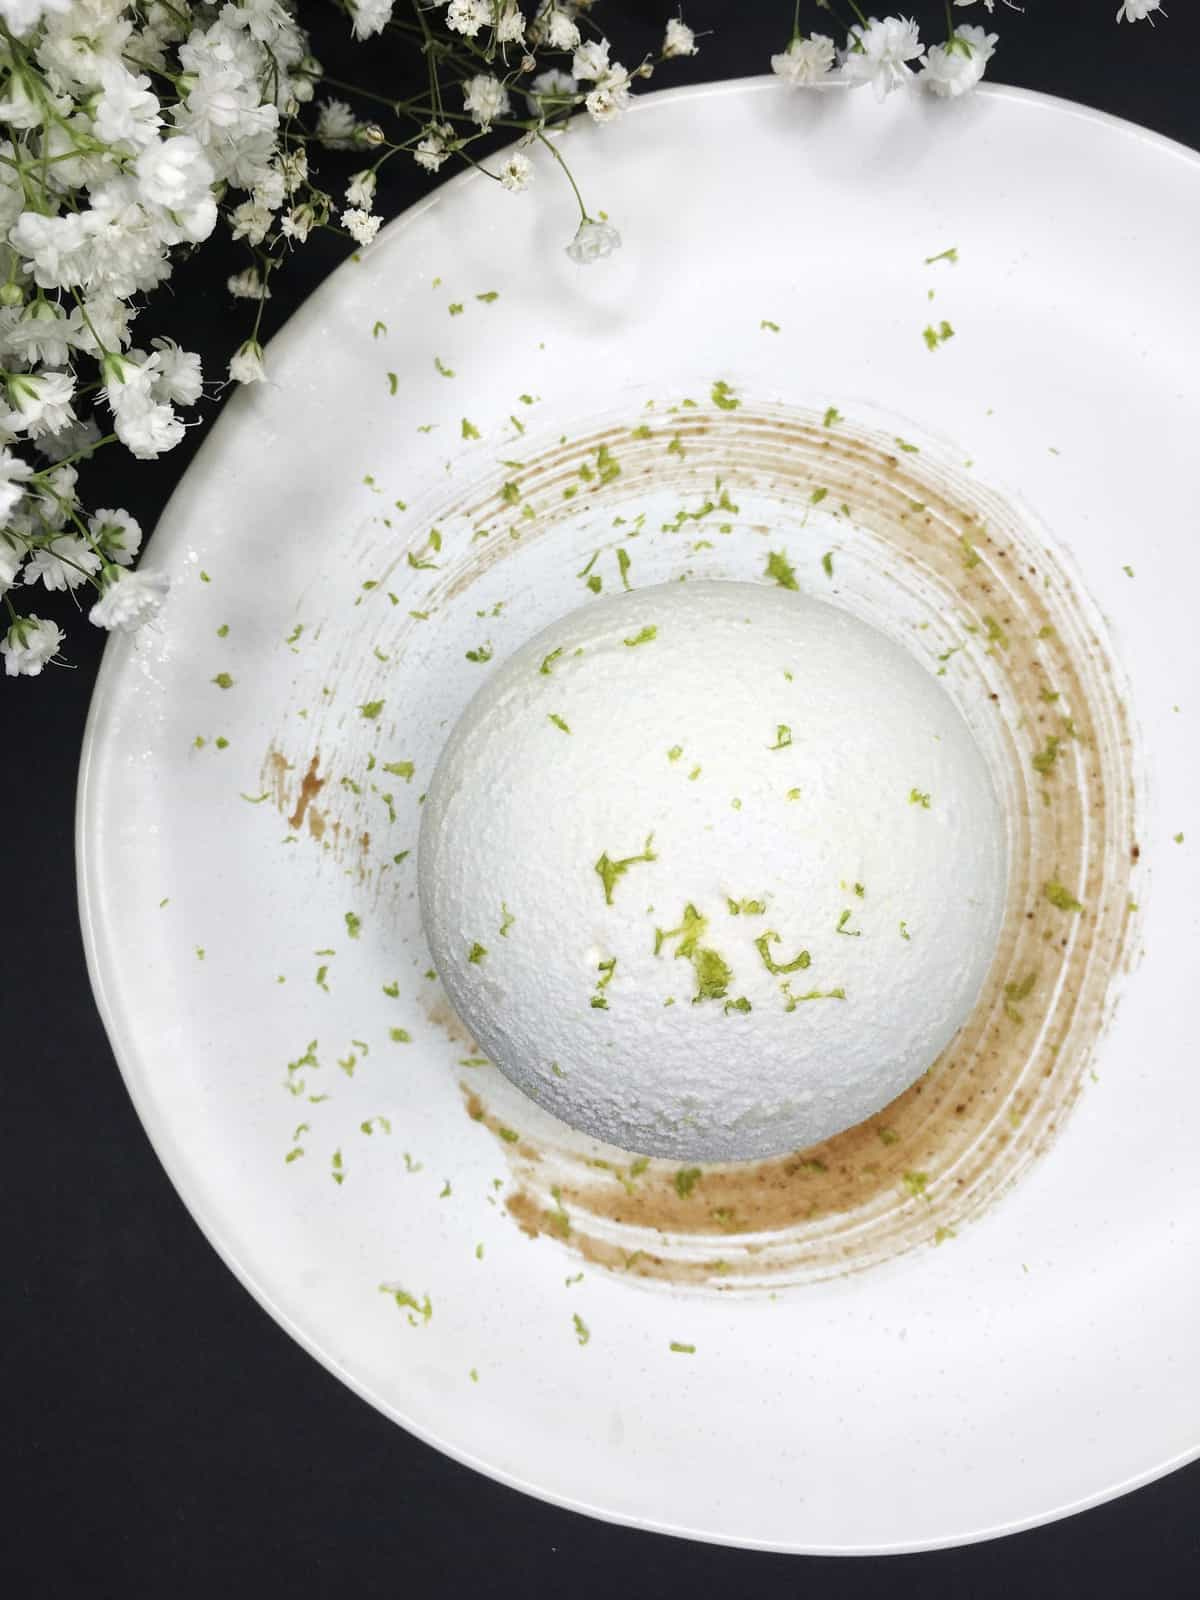 A meringue snowball sprinkled with lime zest on a plate with flowers aside